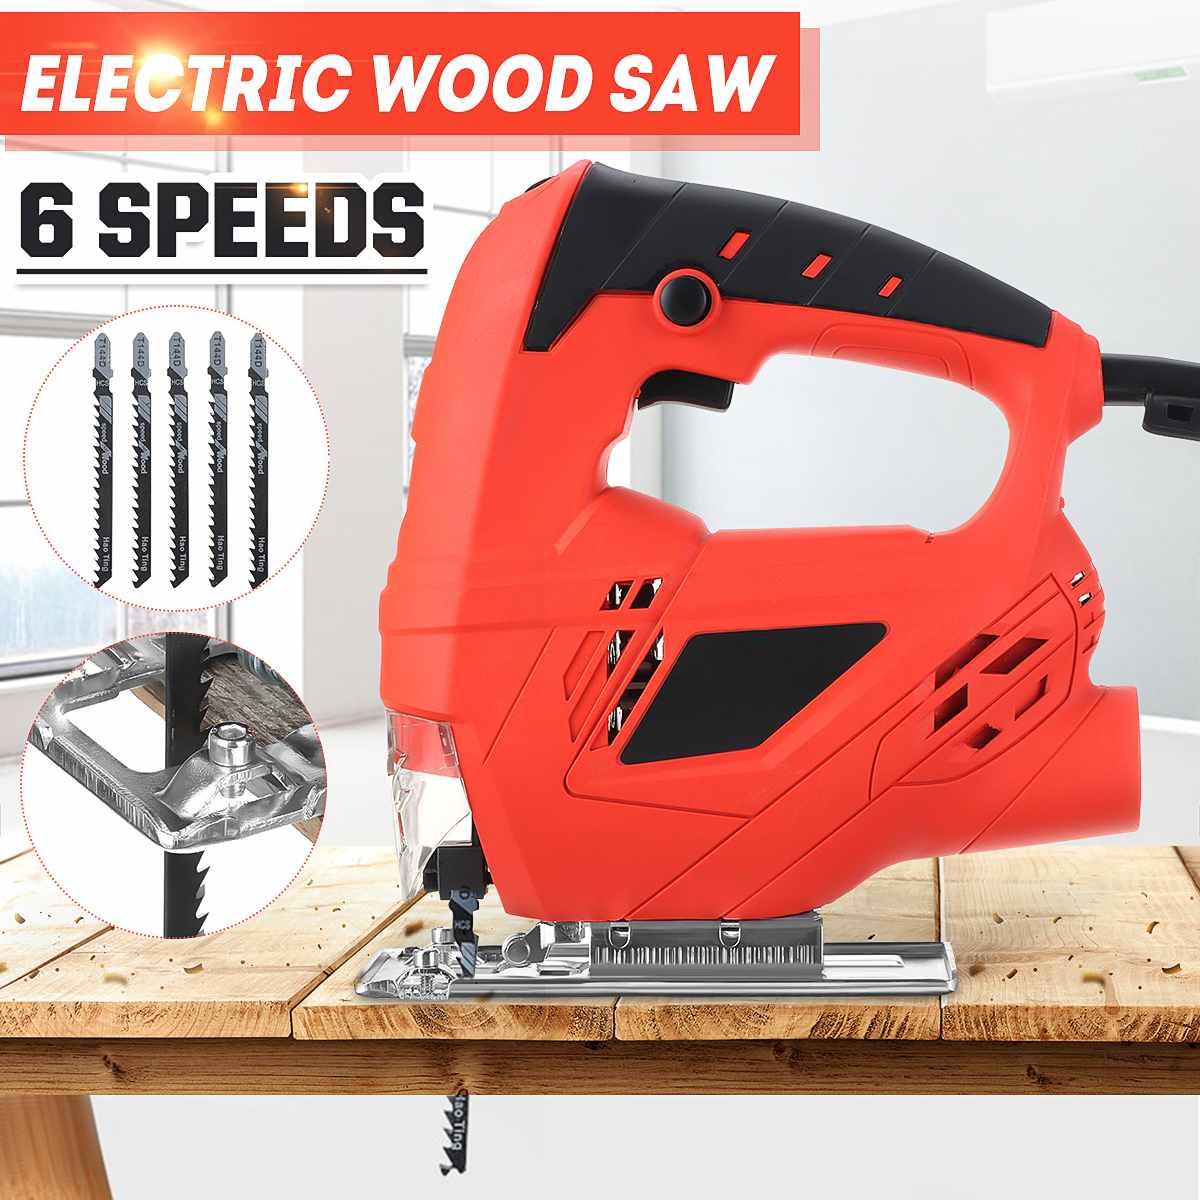 Doersupp 6 Variable Adjustable Speed Electric Wood Saw Woodworking Multi-angle 45 Degree Straight Curved Power Tools